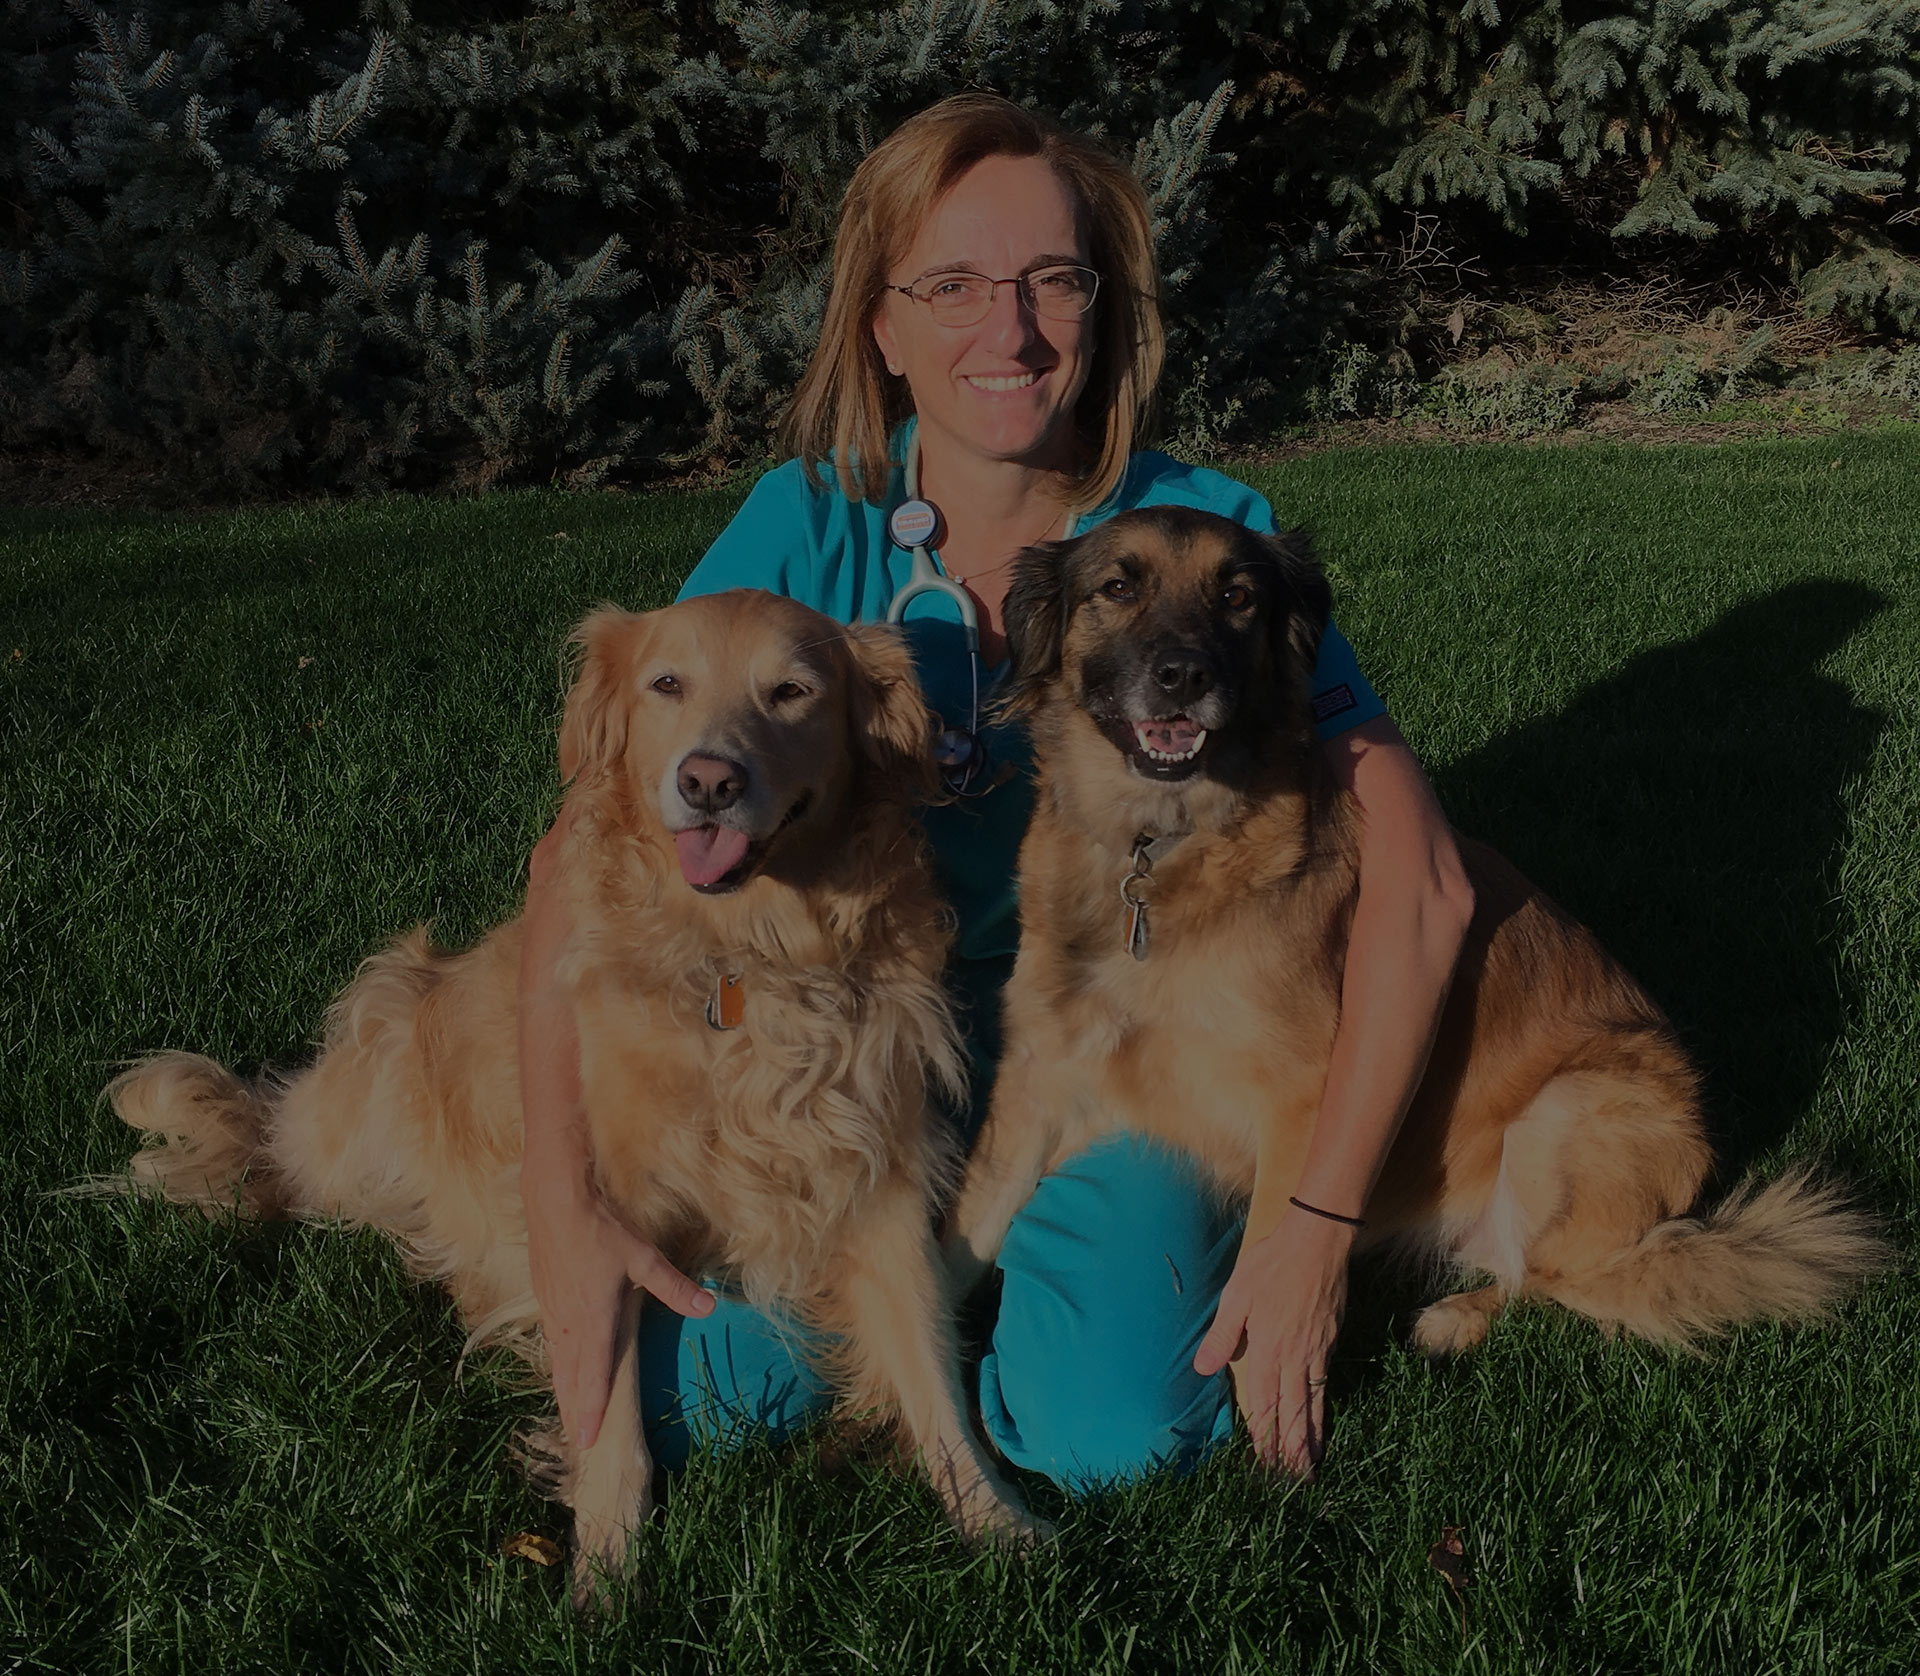 Maria with her two dogs